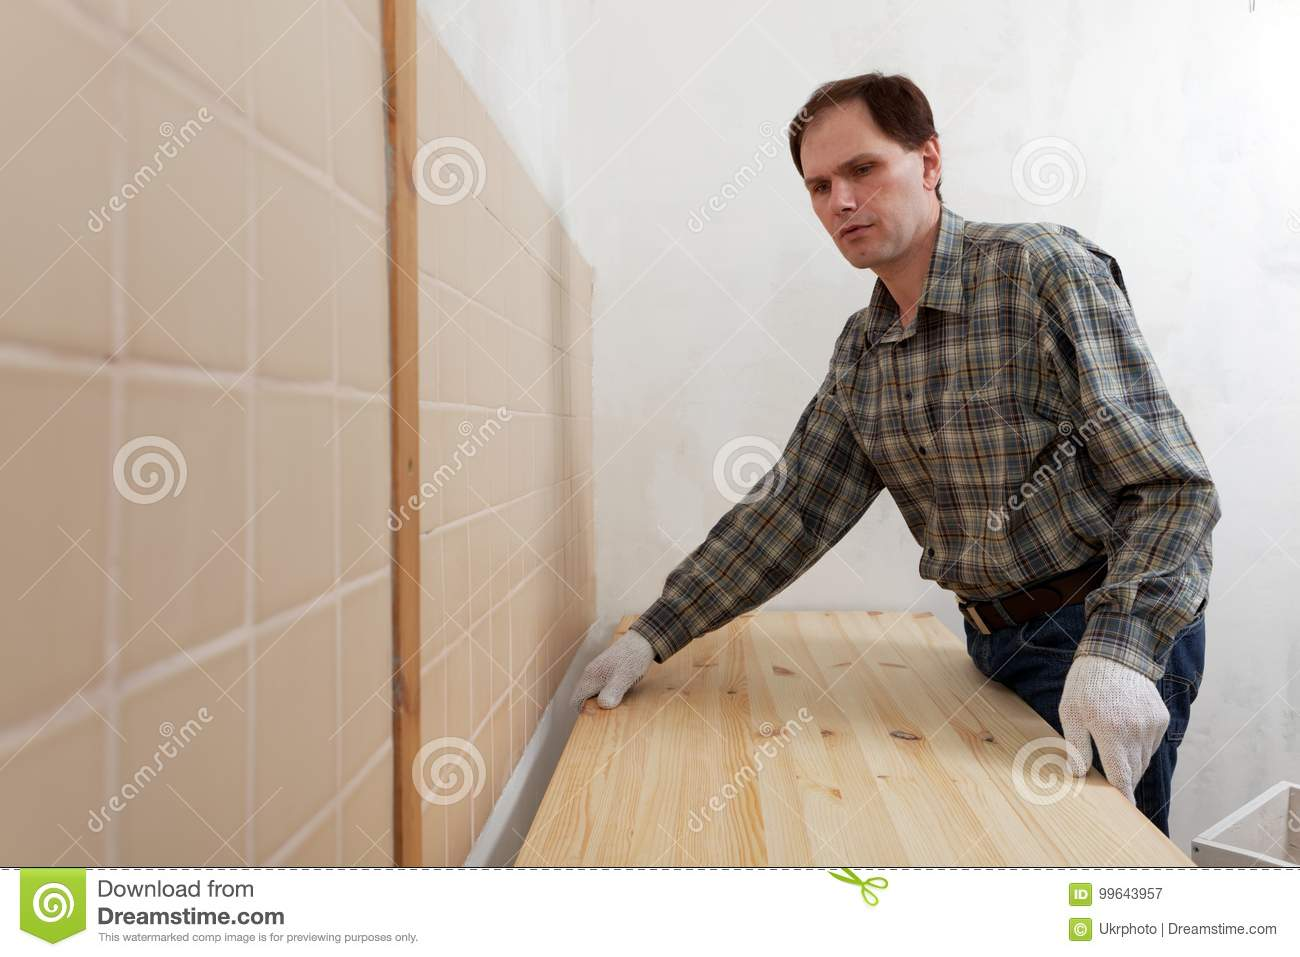 Installing A Countertop Worker Installing A Countertop Stock Image Image Of Manual